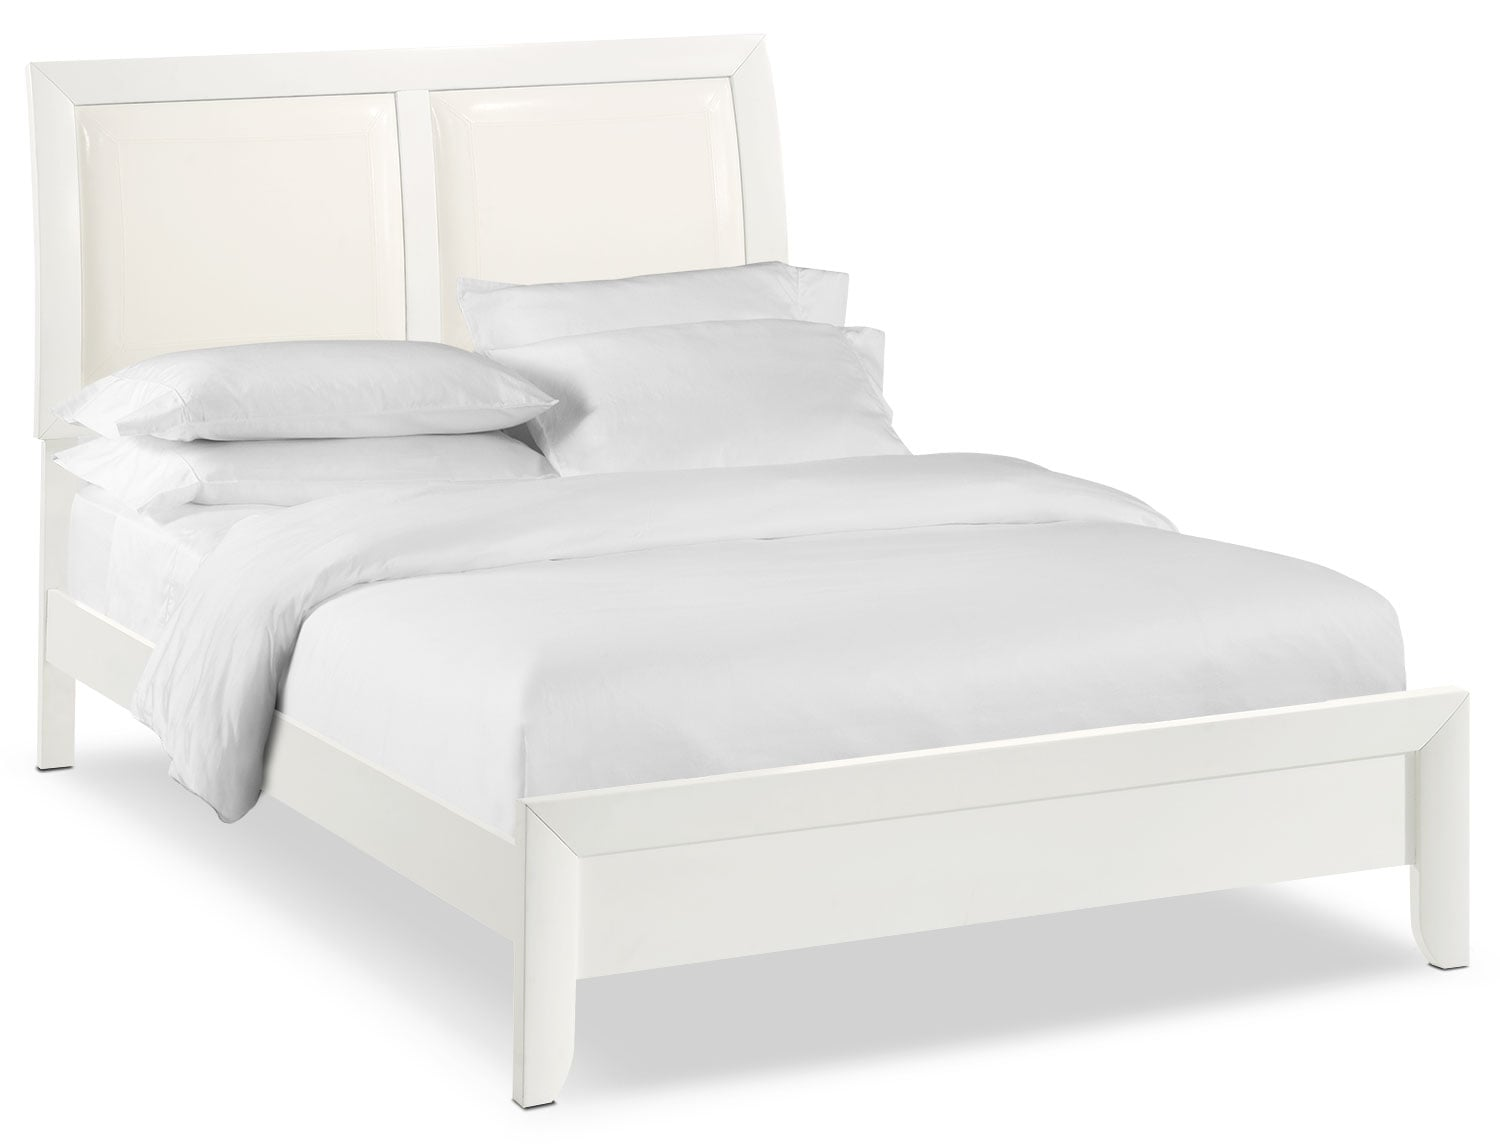 Braden Queen Upholstered Bed - White